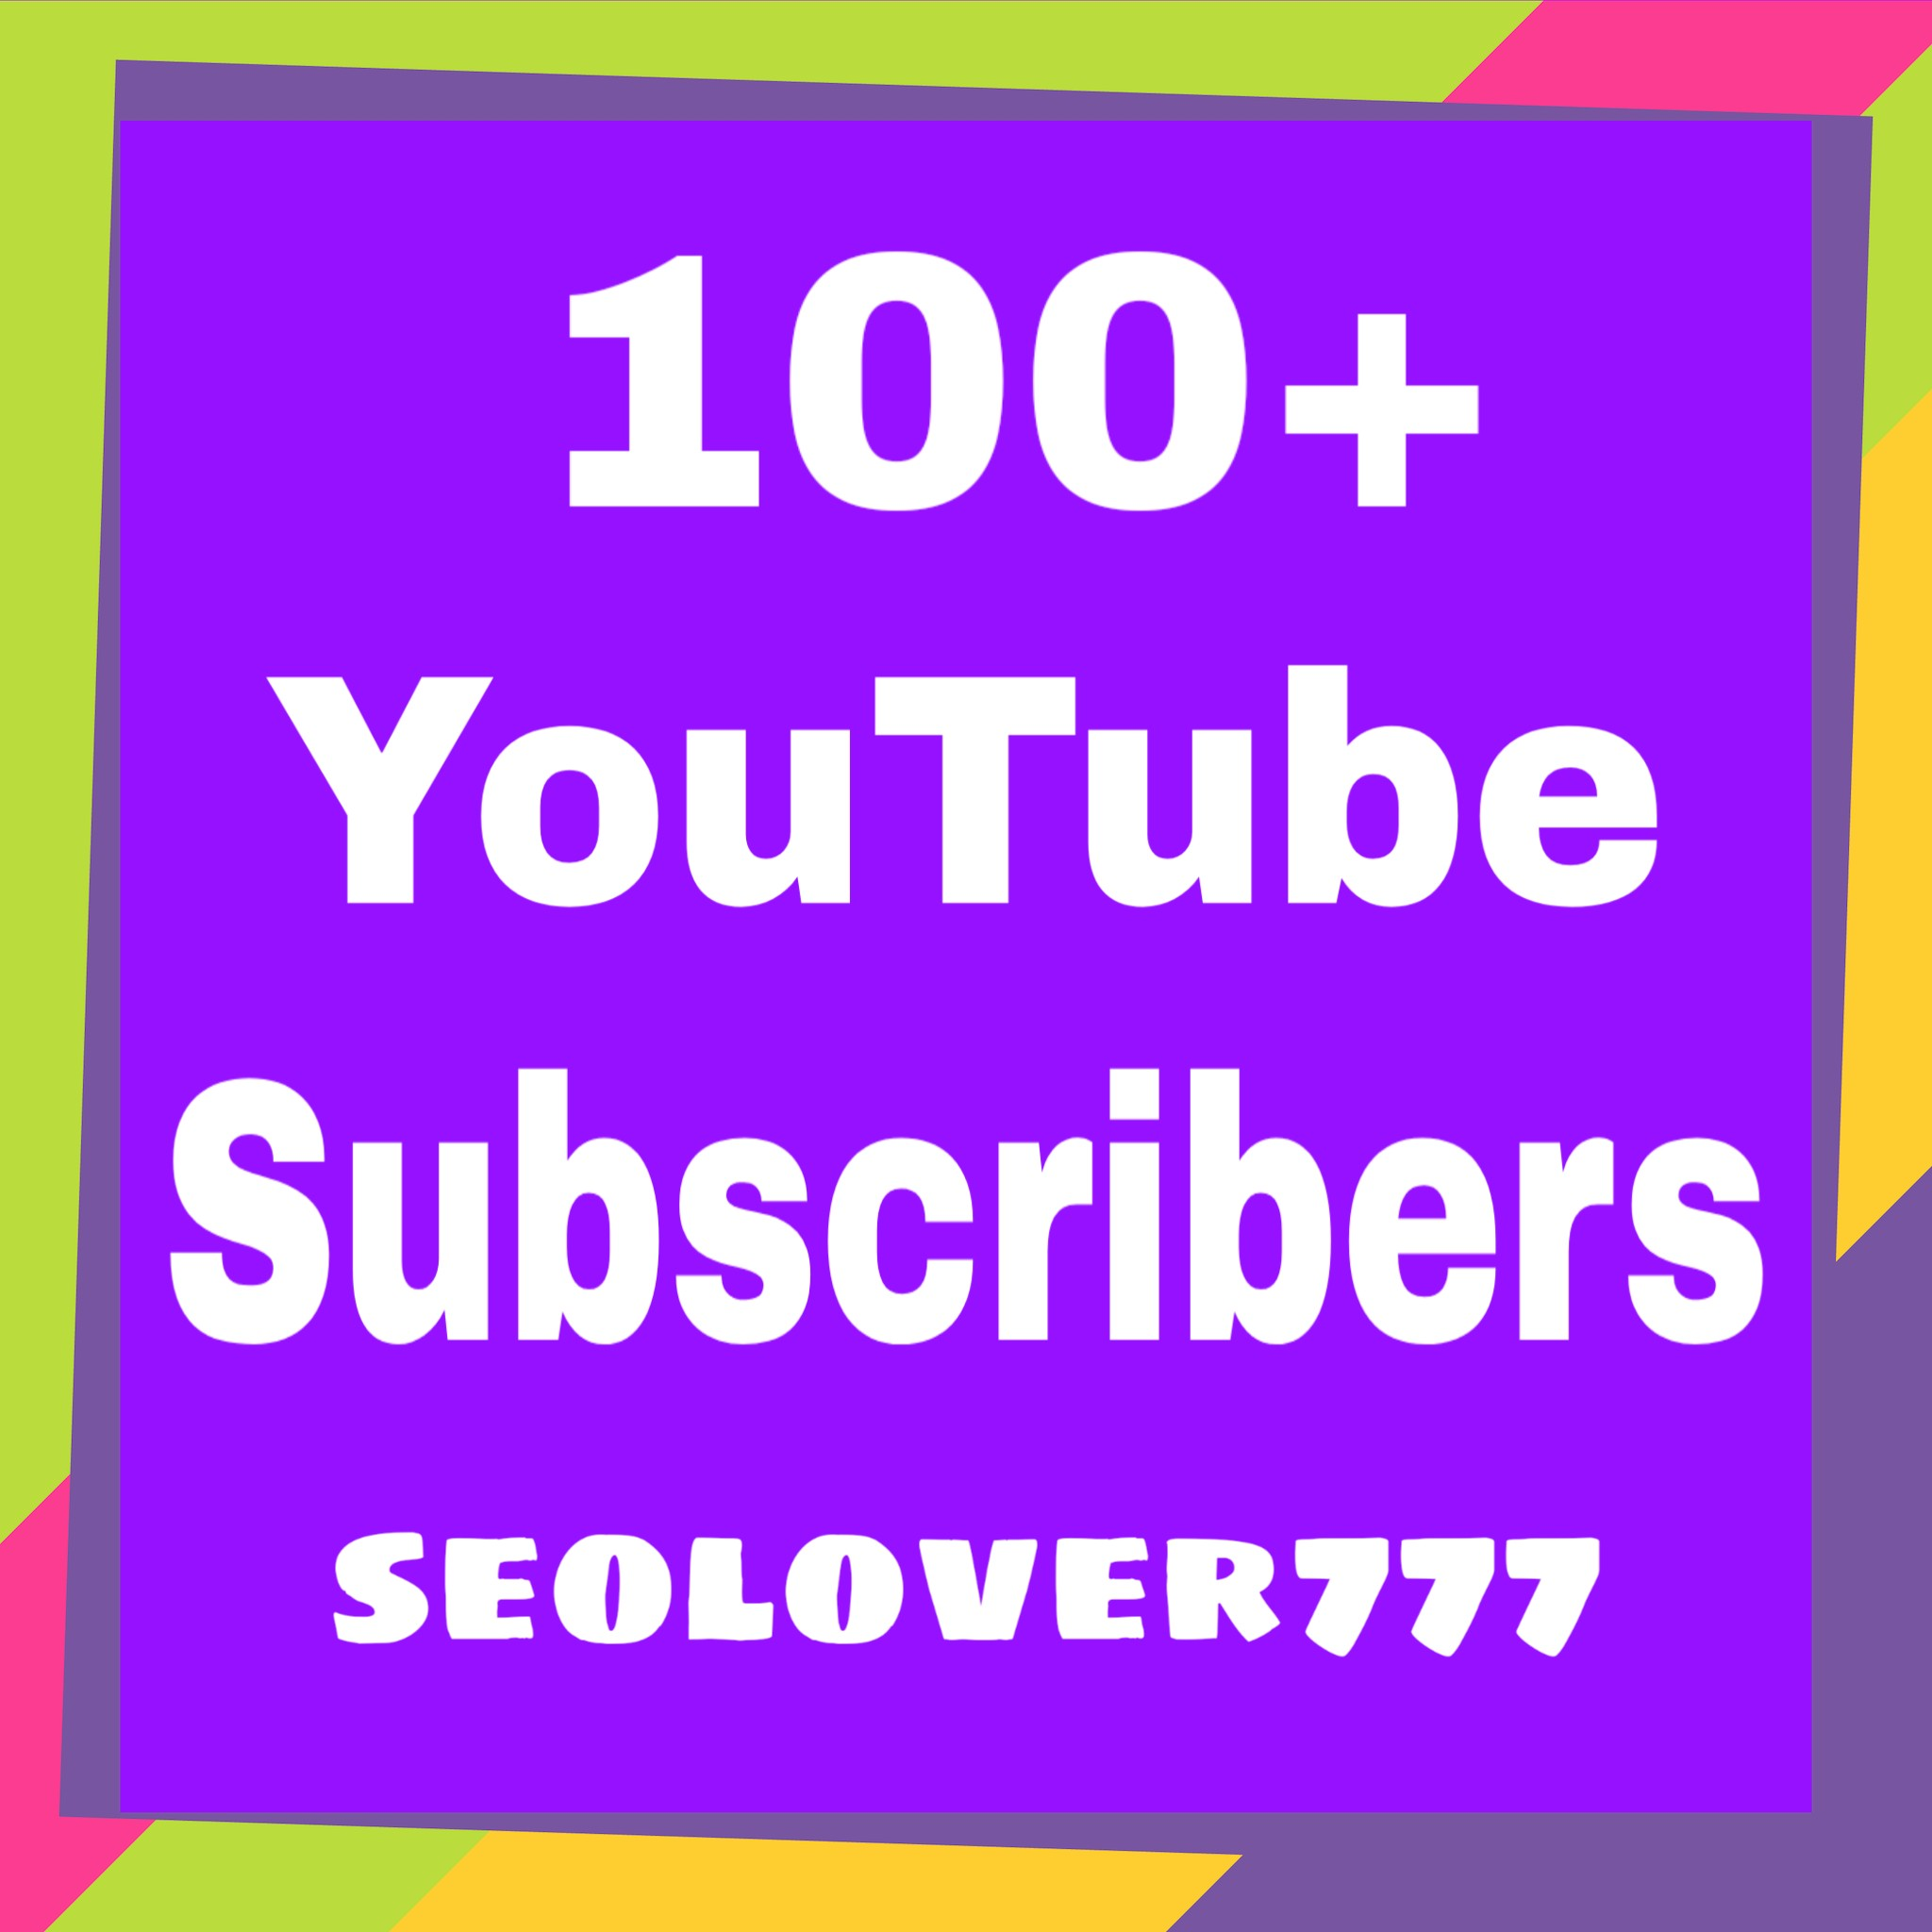 YouTube-Video-Marketing-and-Social-Media-Promotion